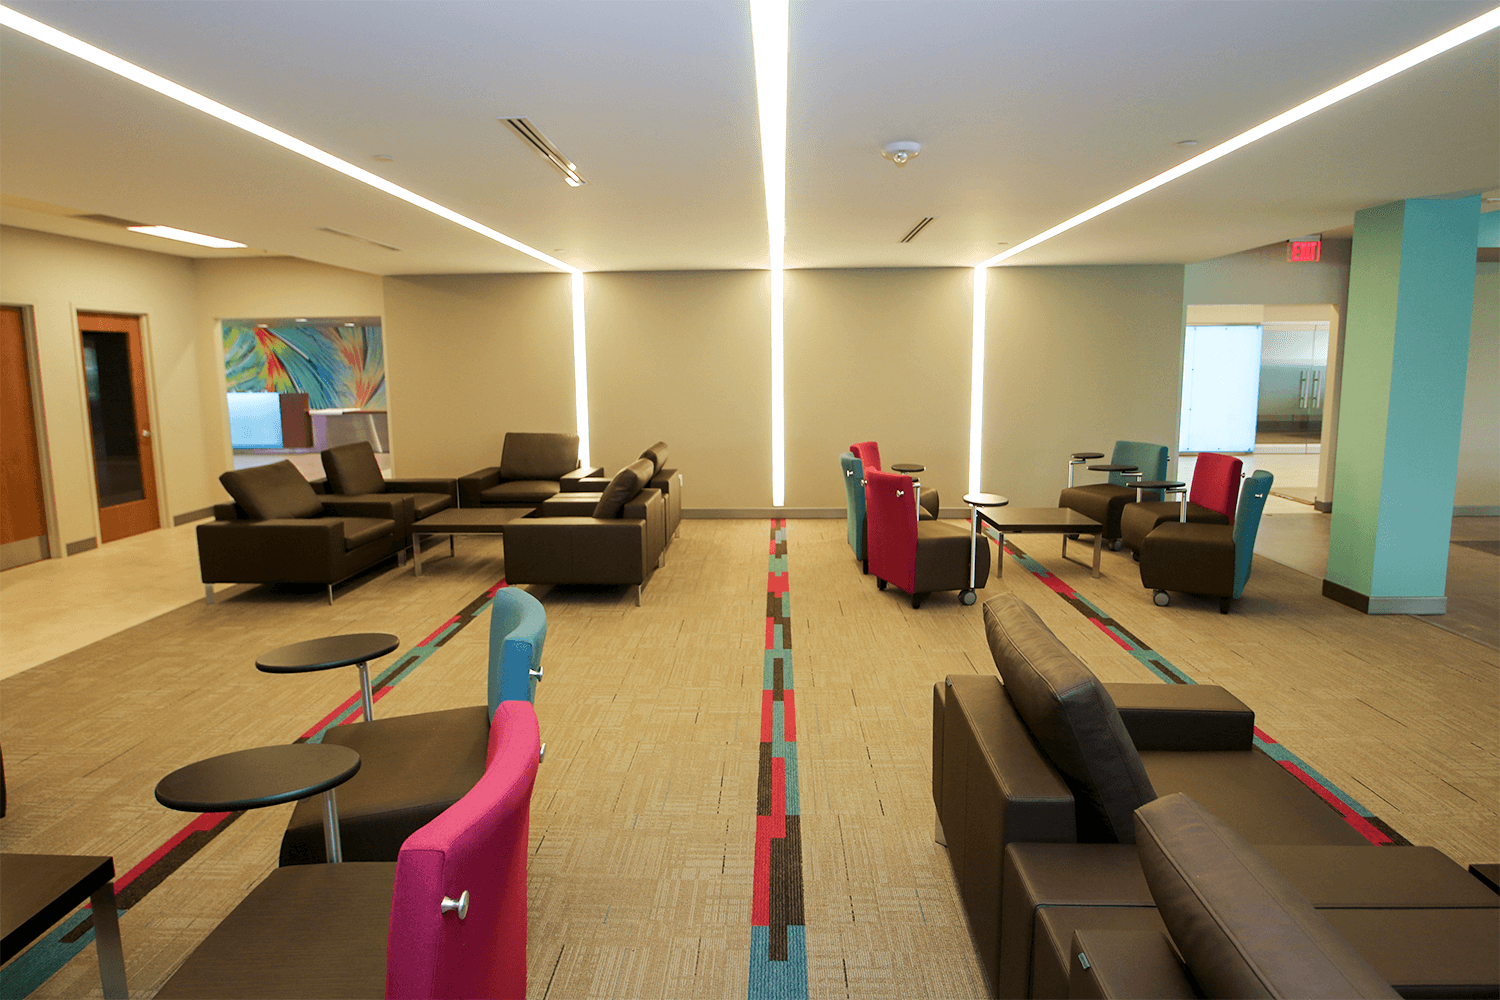 collaborative workspace with colorful accents, modern furniture, and light fixtures that span along the floors and ceiling